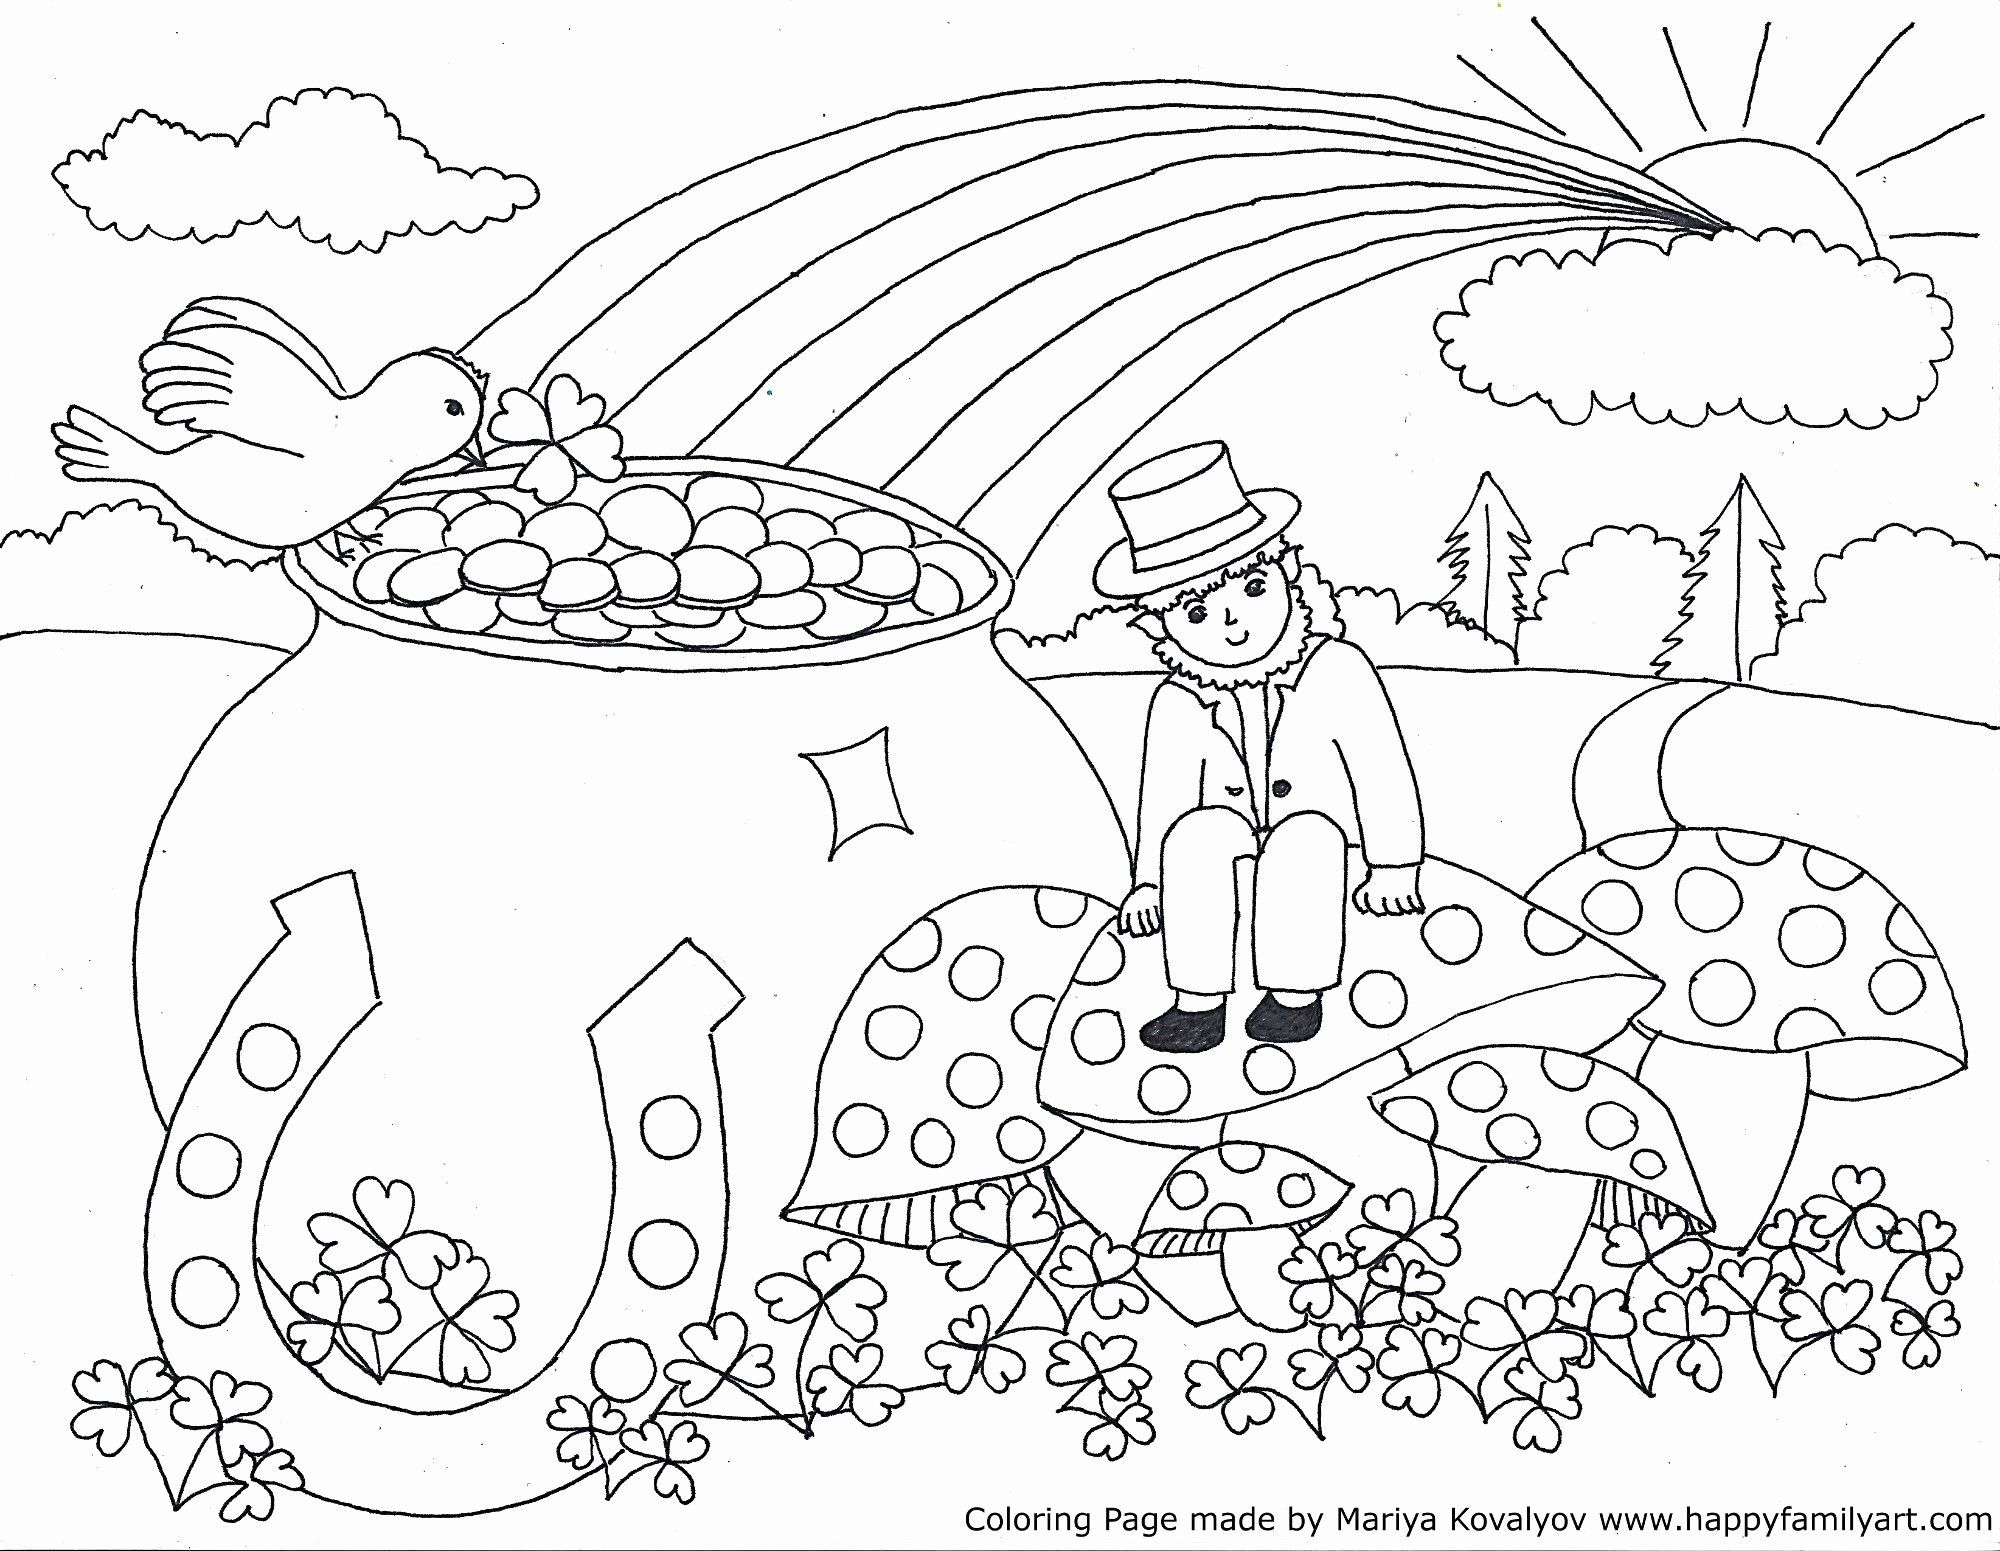 Coloring Pages For St Patricks Day In 2020 With Images St